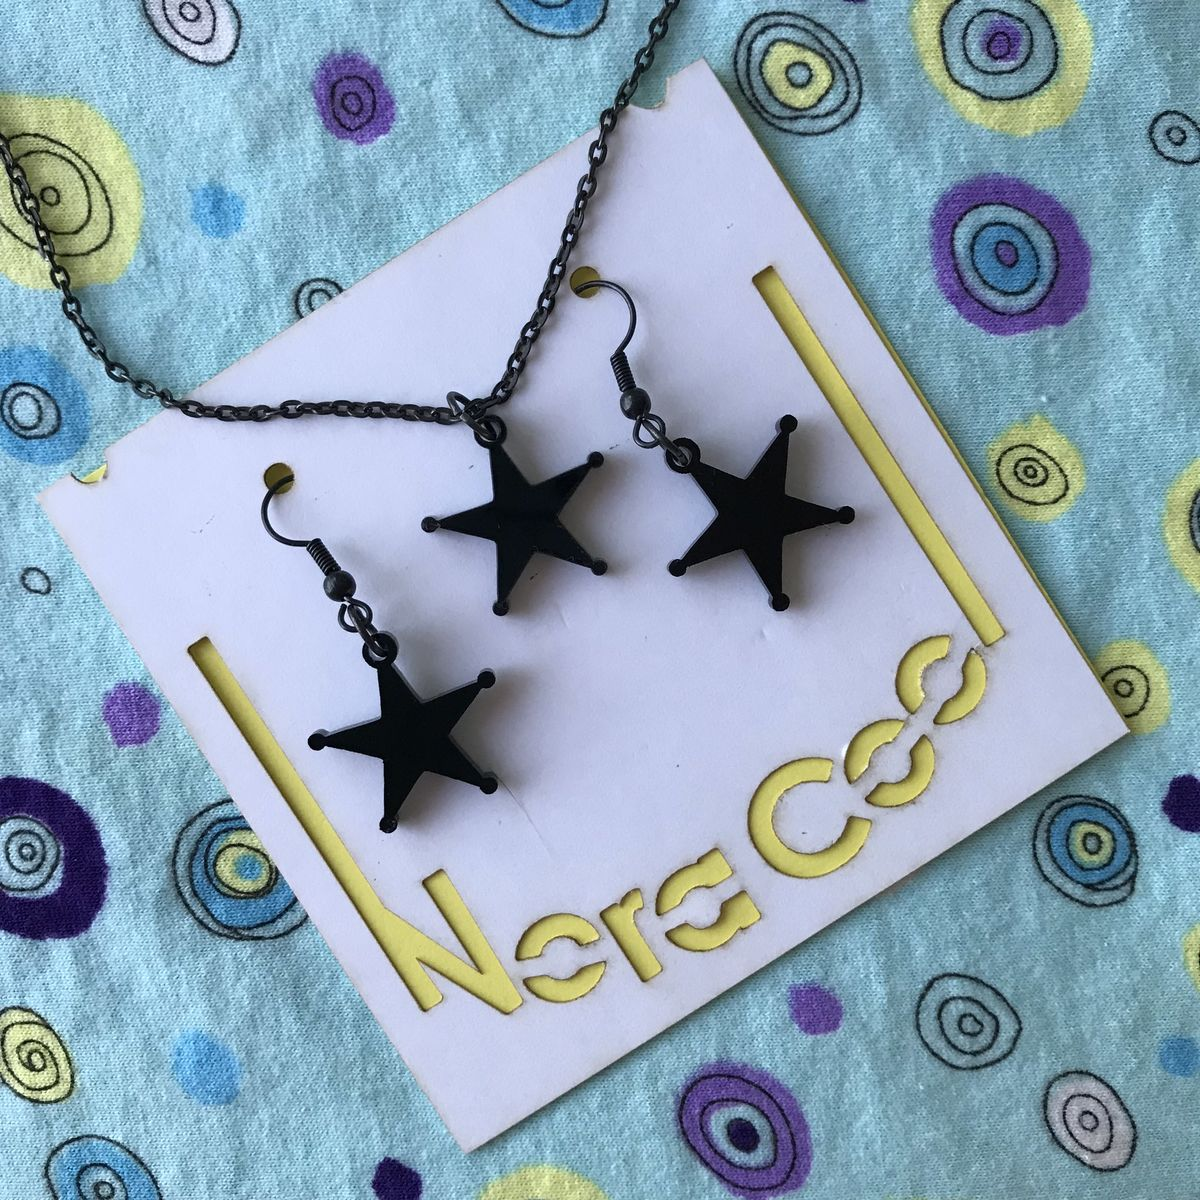 Black Star Acrylic earring and necklace set FREEPOST UK - product images  of